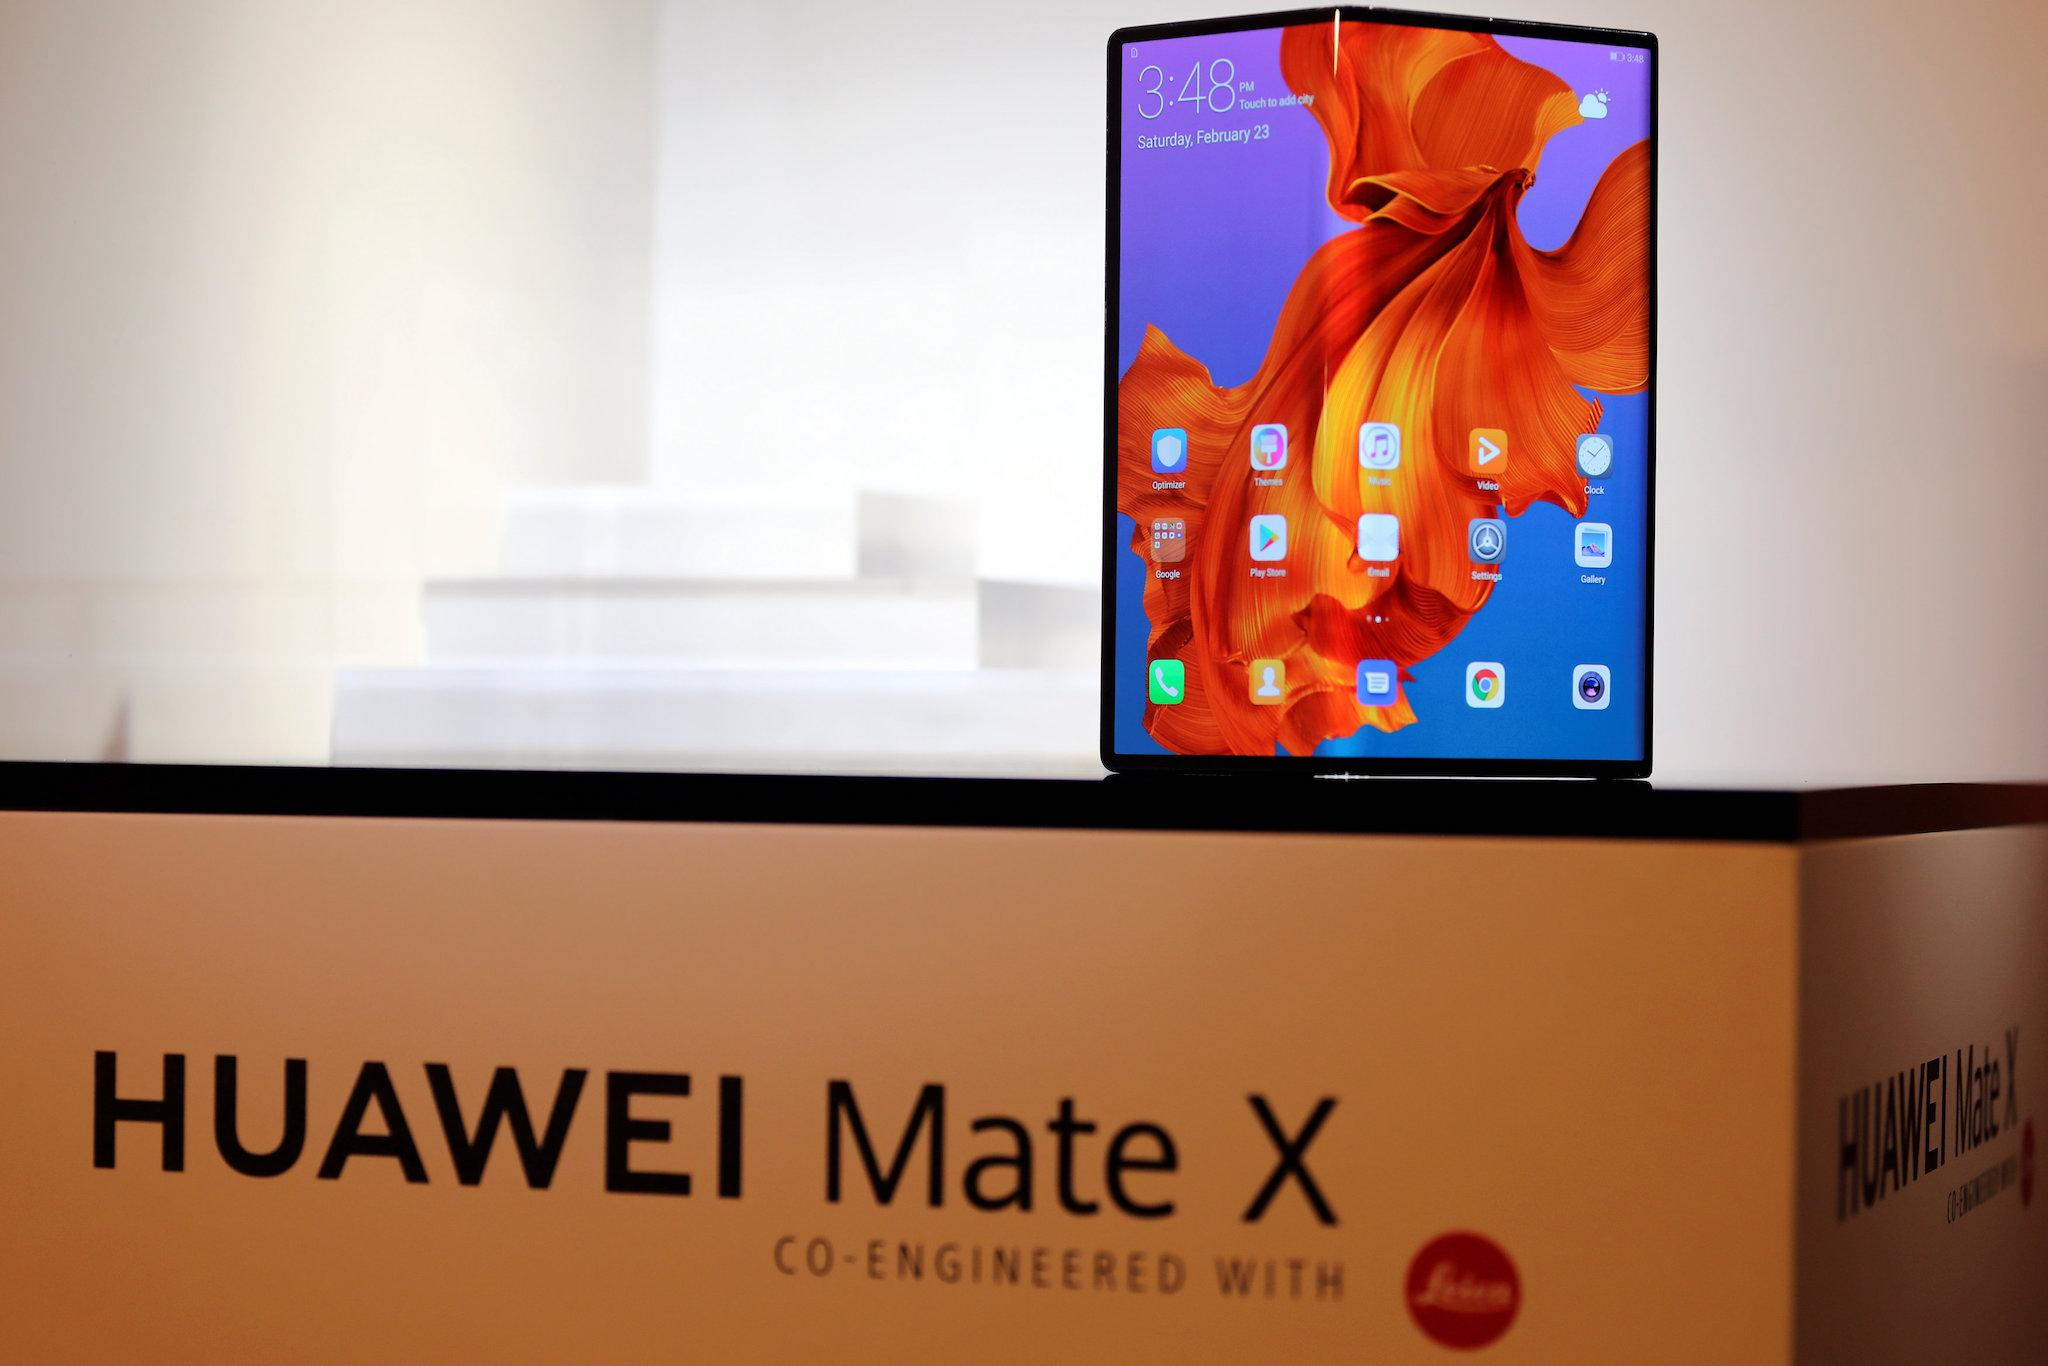 Huawei delays Mate X folding phone launch to avoid Samsung mess